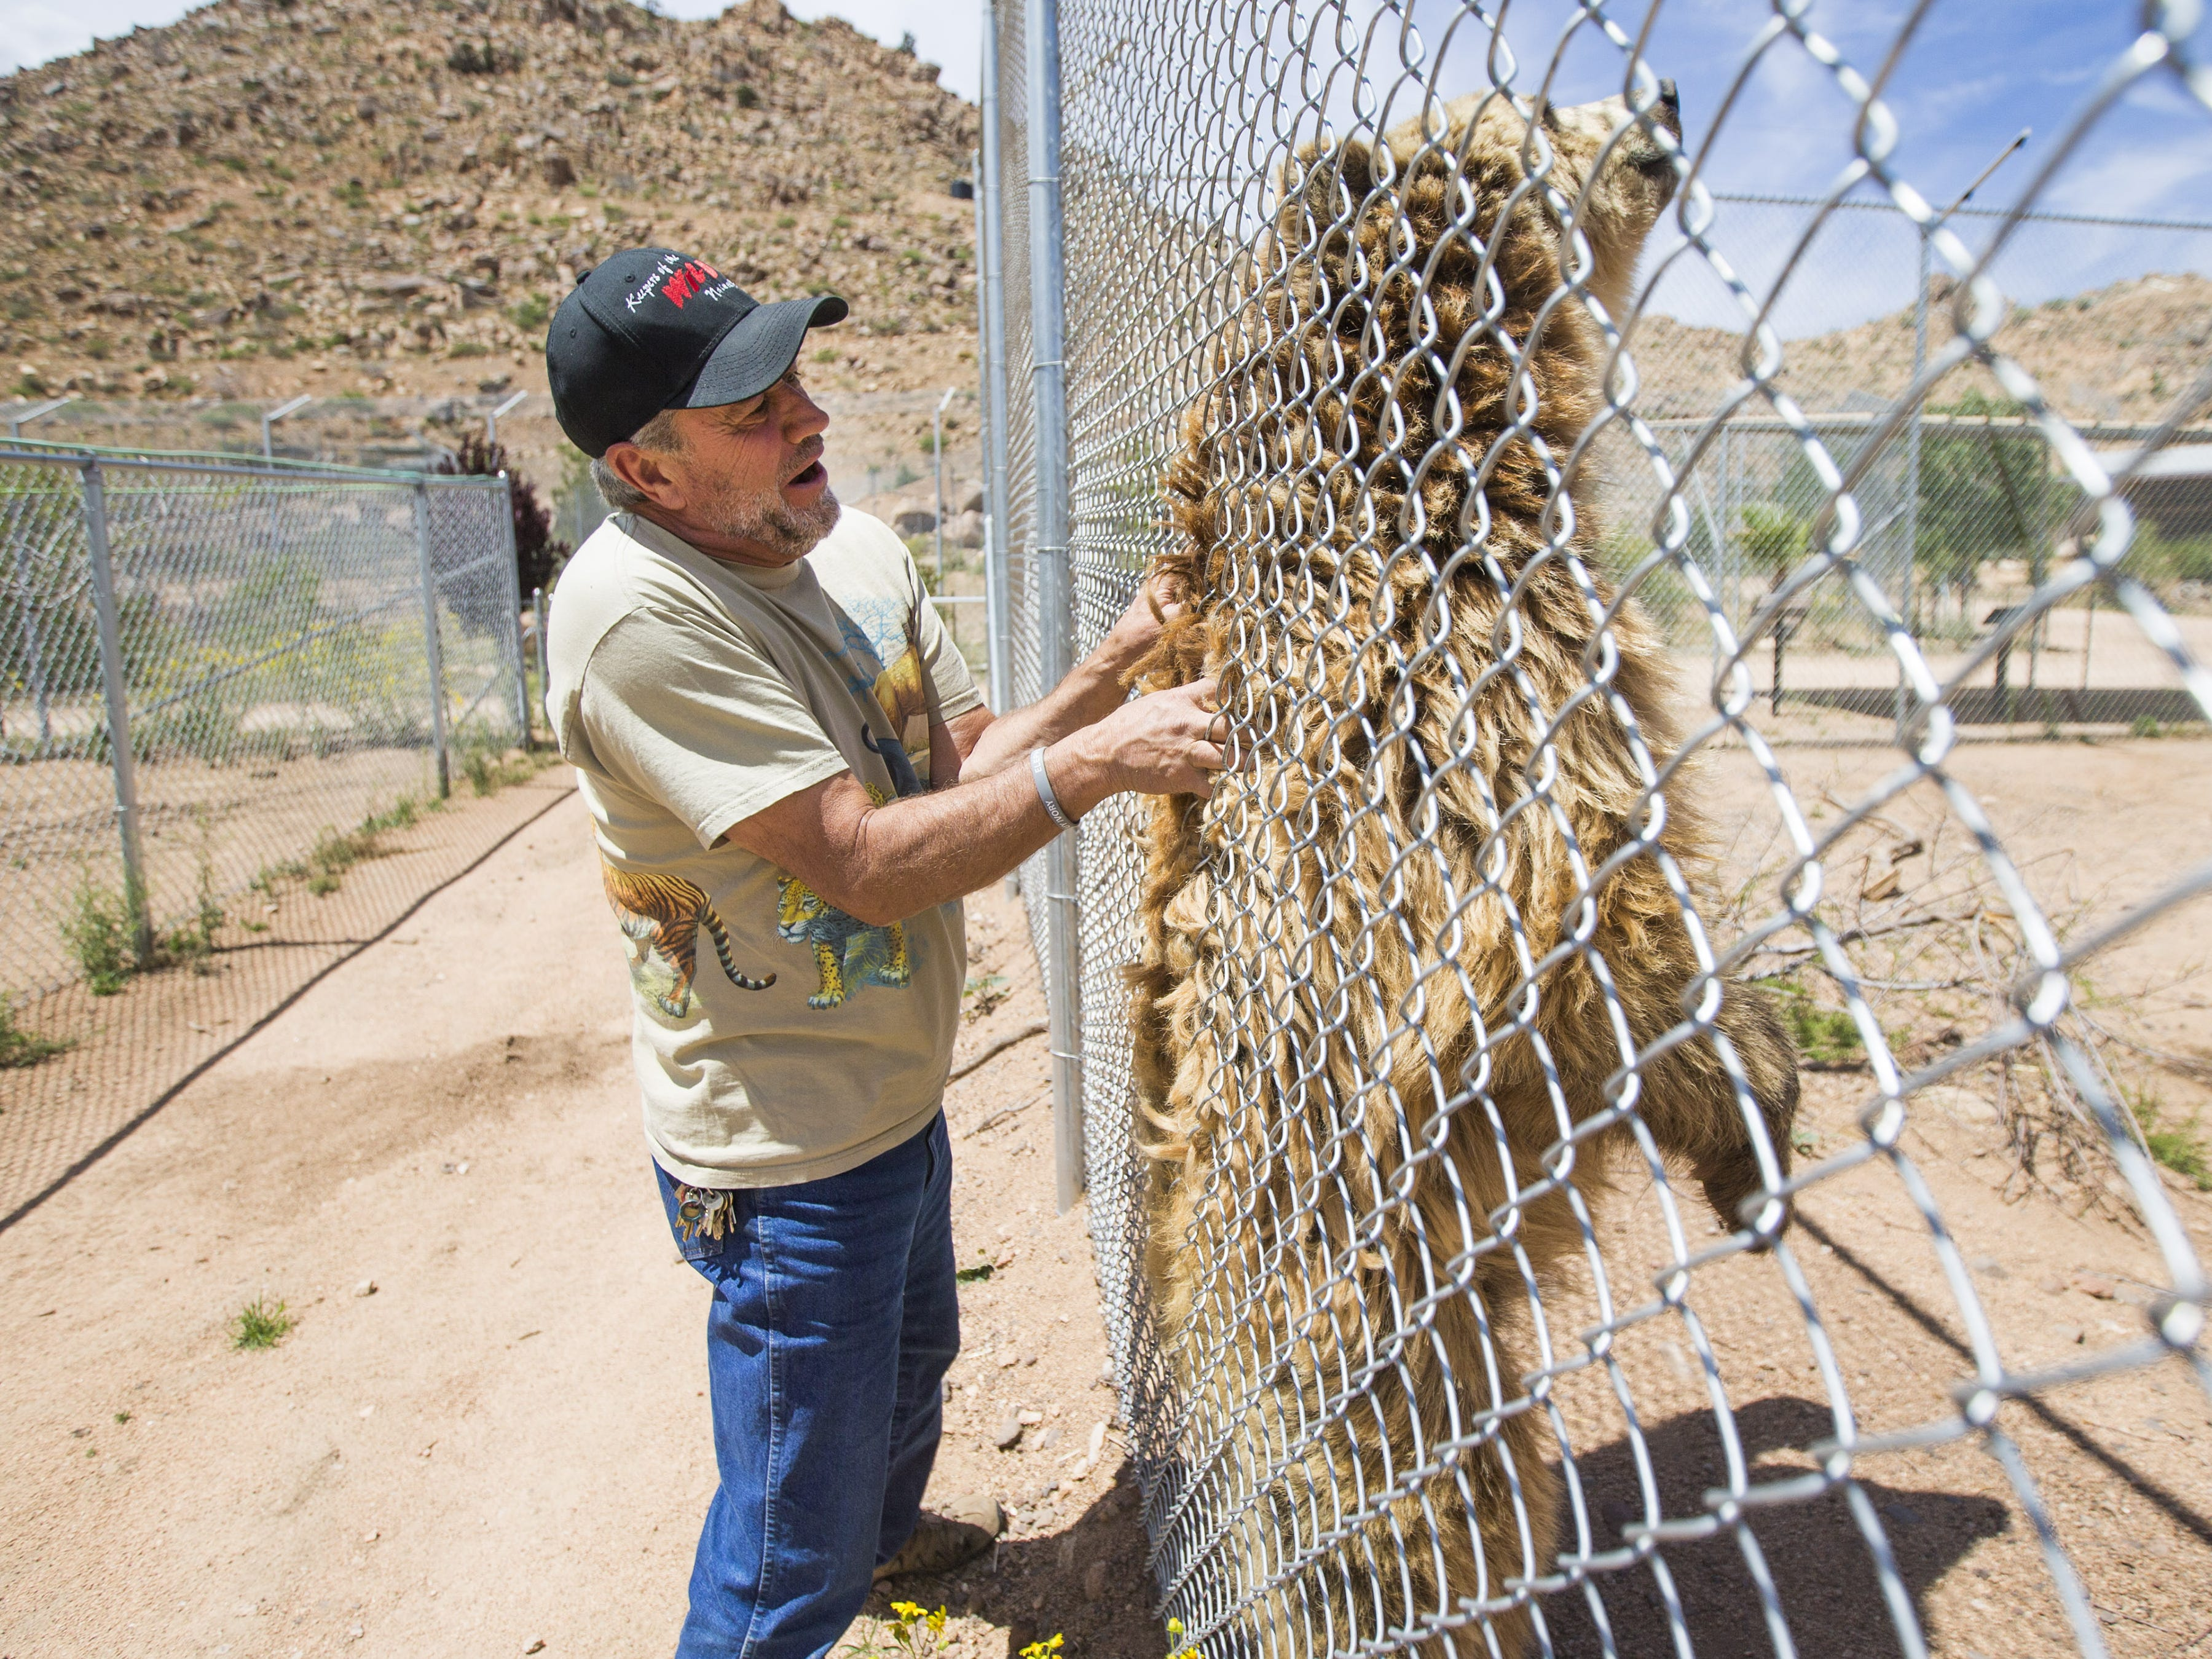 Keepers of the Wild founder Jonathan Kraft scratches Bam Bam, a grizzly bear, in Valentine, Ariz., on May 27, 2015. The nonprofit sanctuary for retired Las Vegas show tigers and other exotic animals is looking to expand north of Kingman.